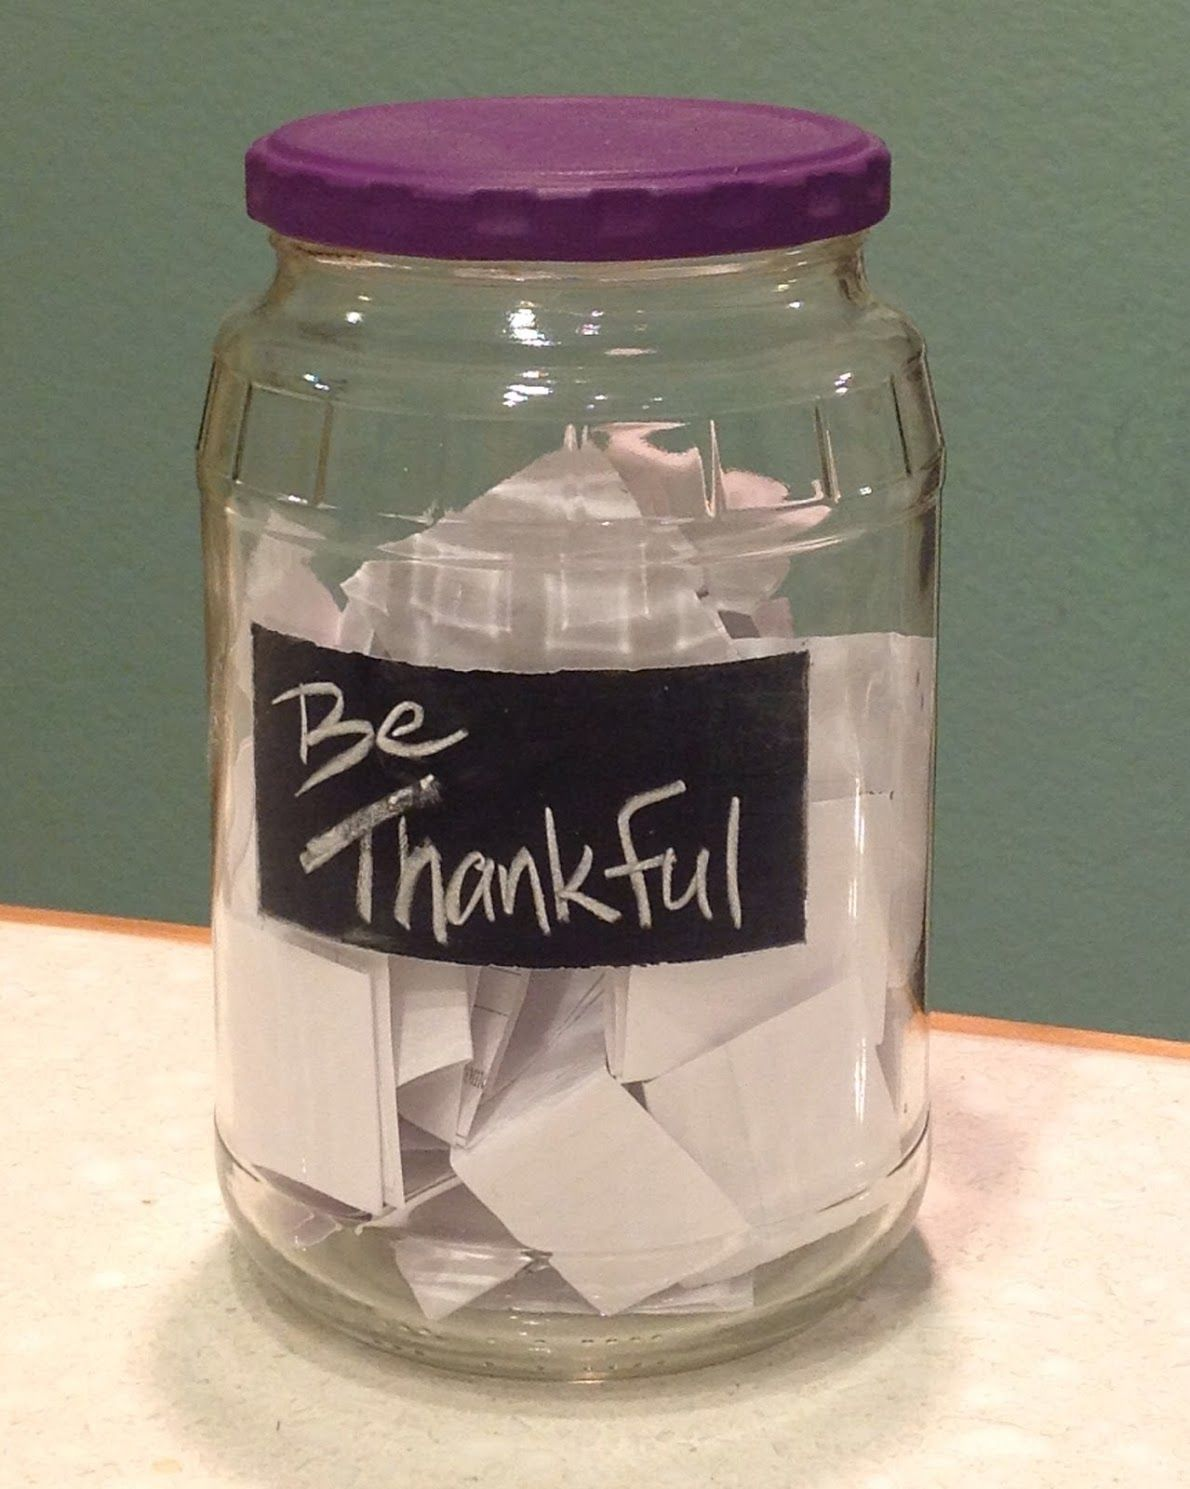 Gratitude Jar An Activity To Focus On Thankfulness